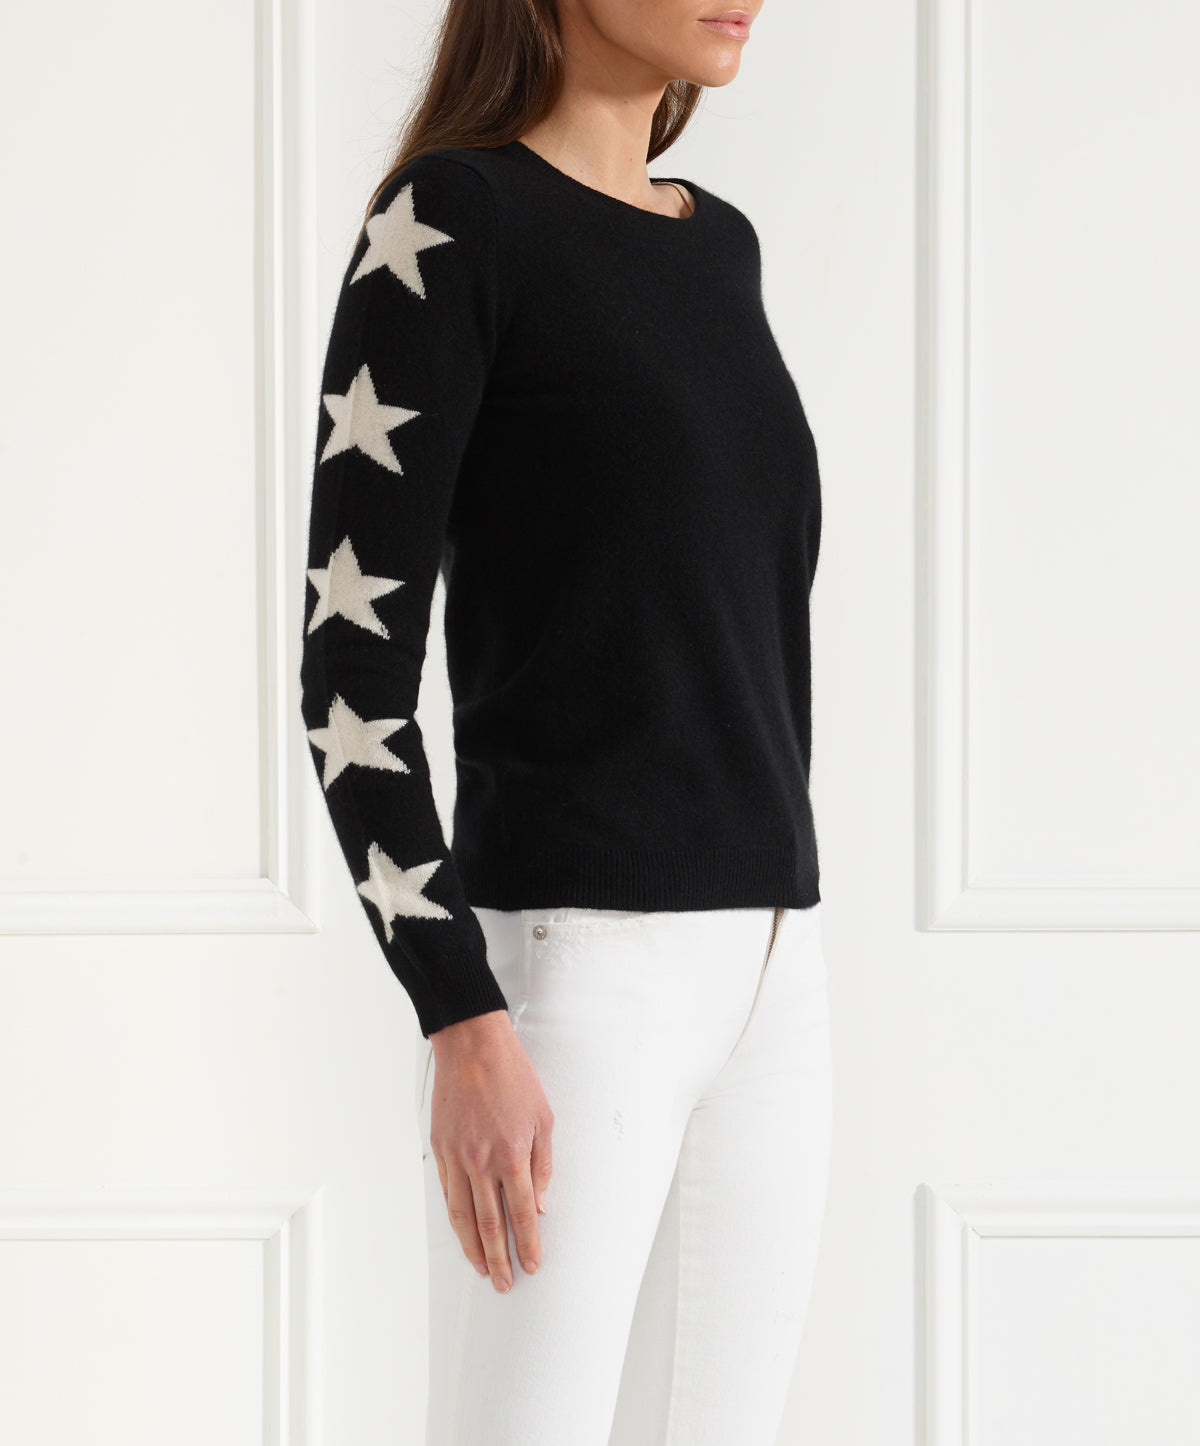 Northern Star Sweater